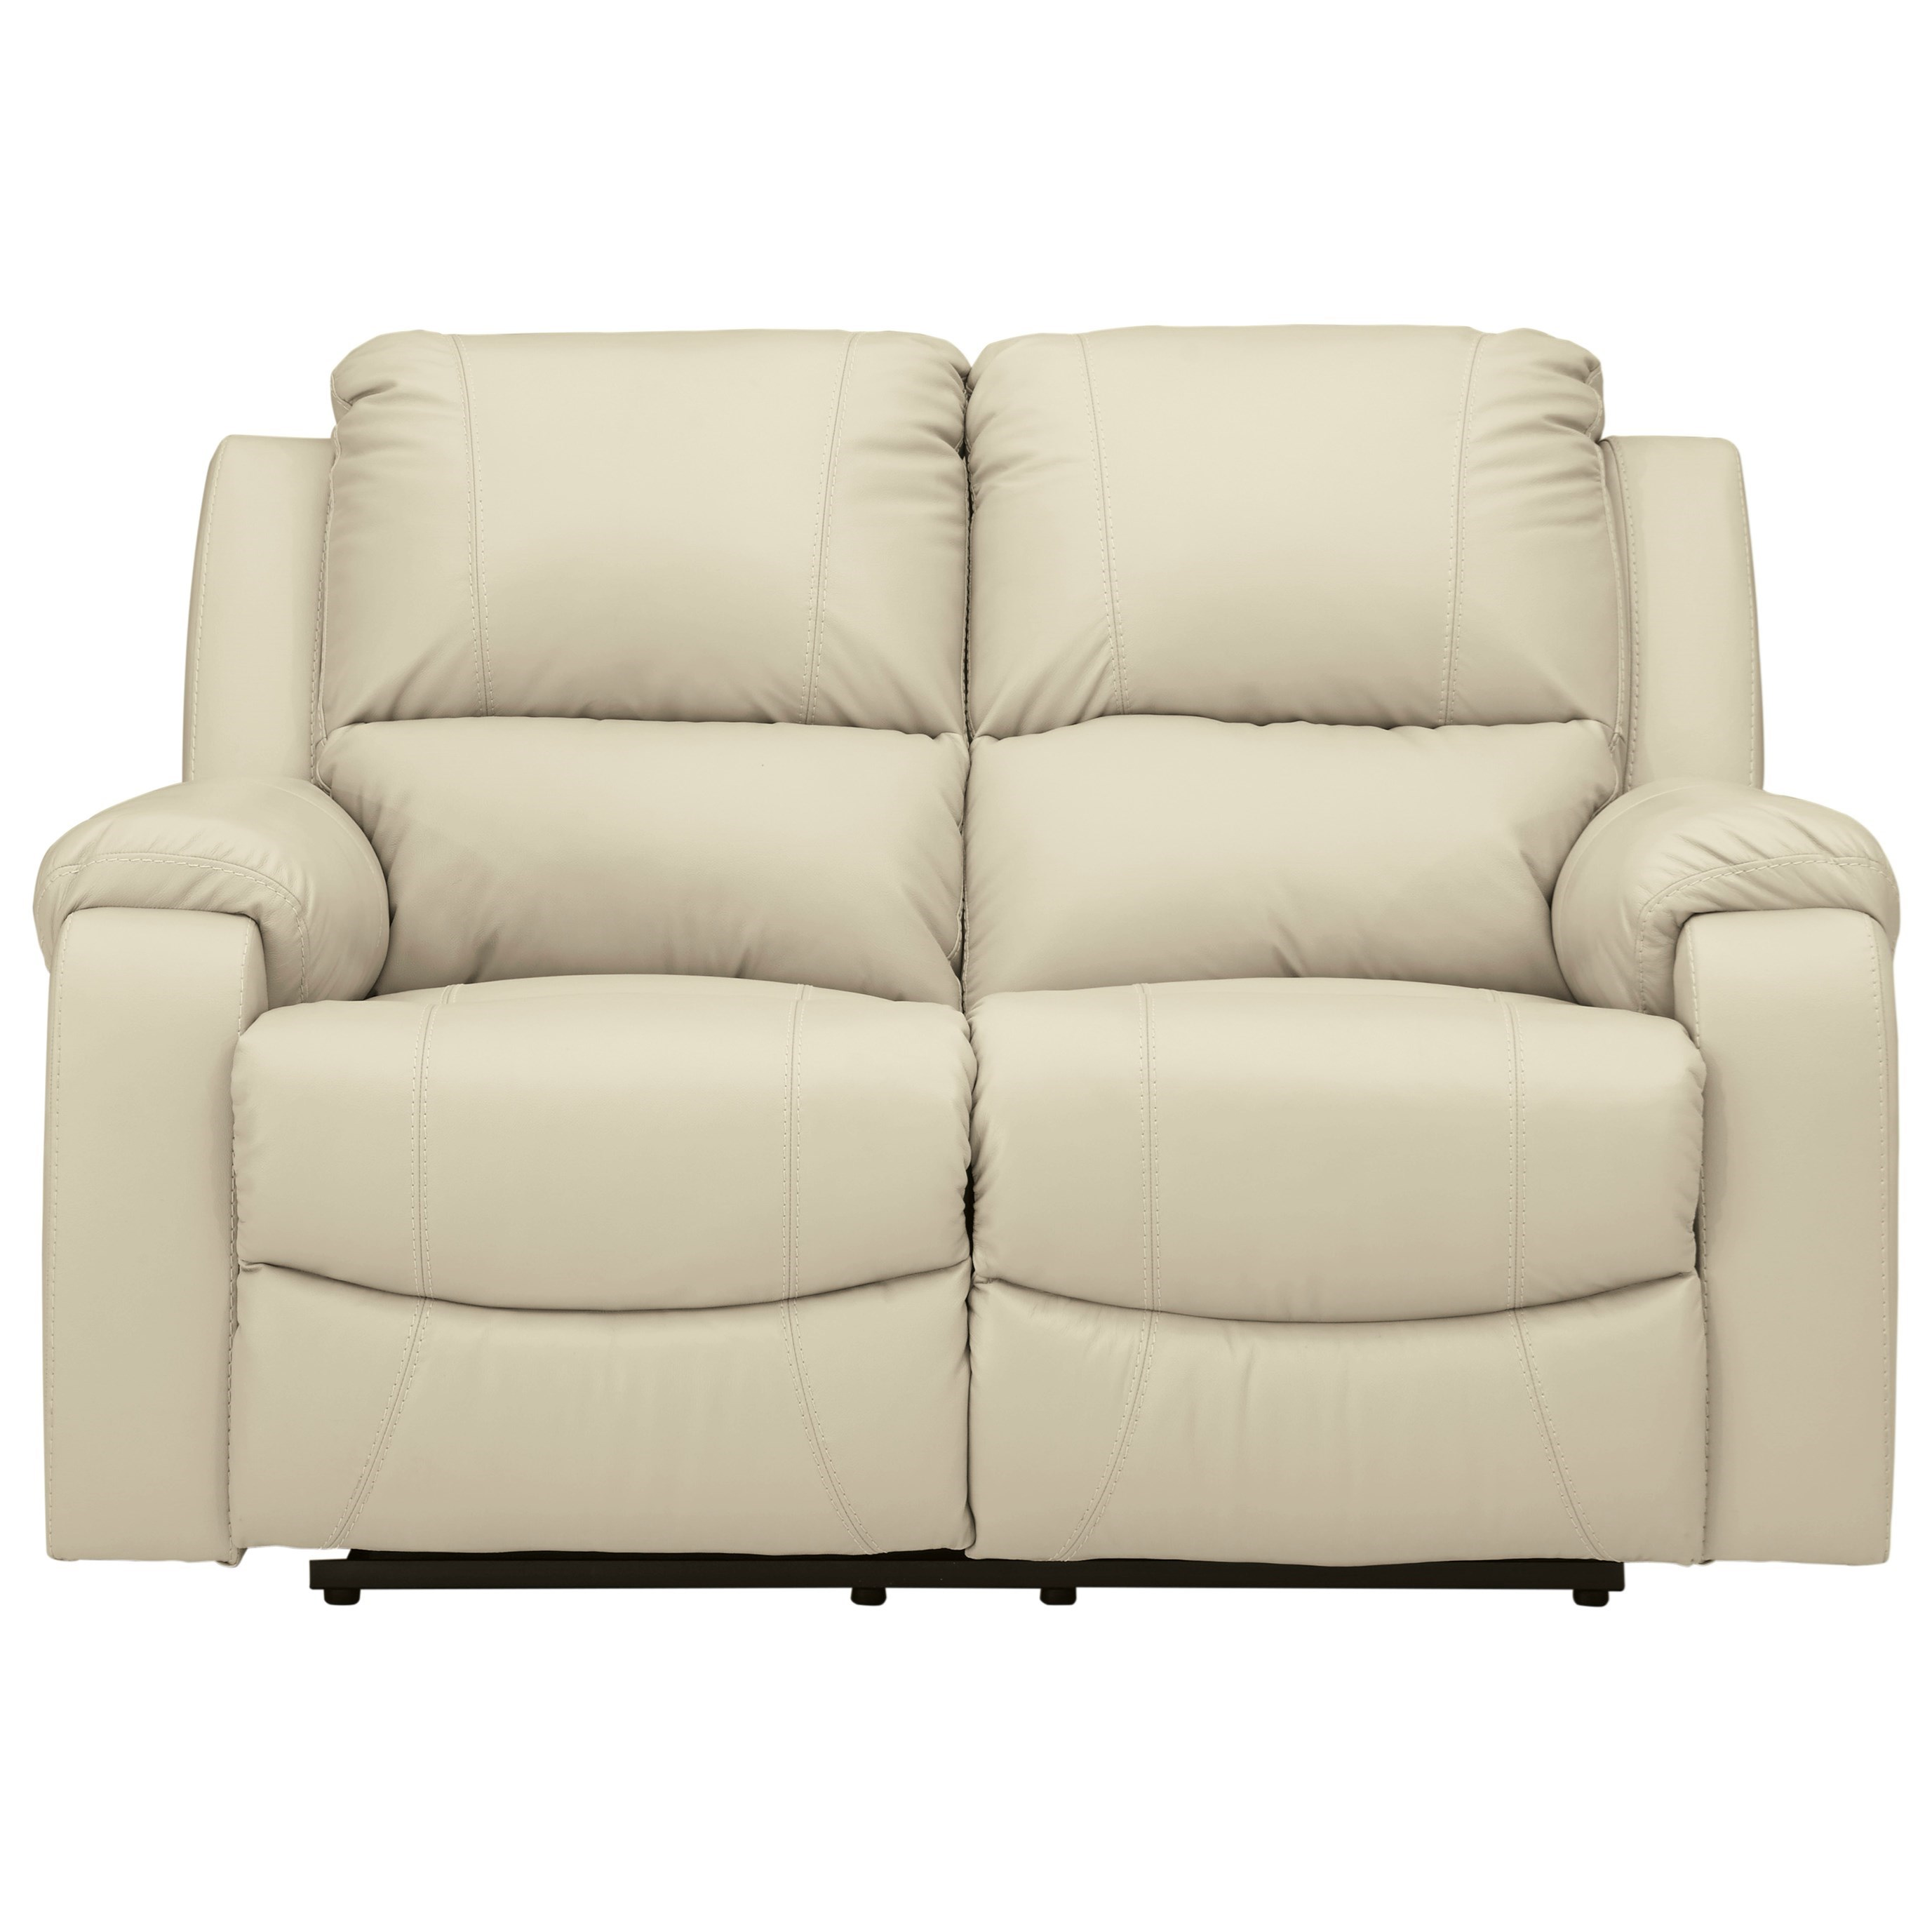 Rackingburg Reclining Loveseat  by Signature Design by Ashley at Northeast Factory Direct